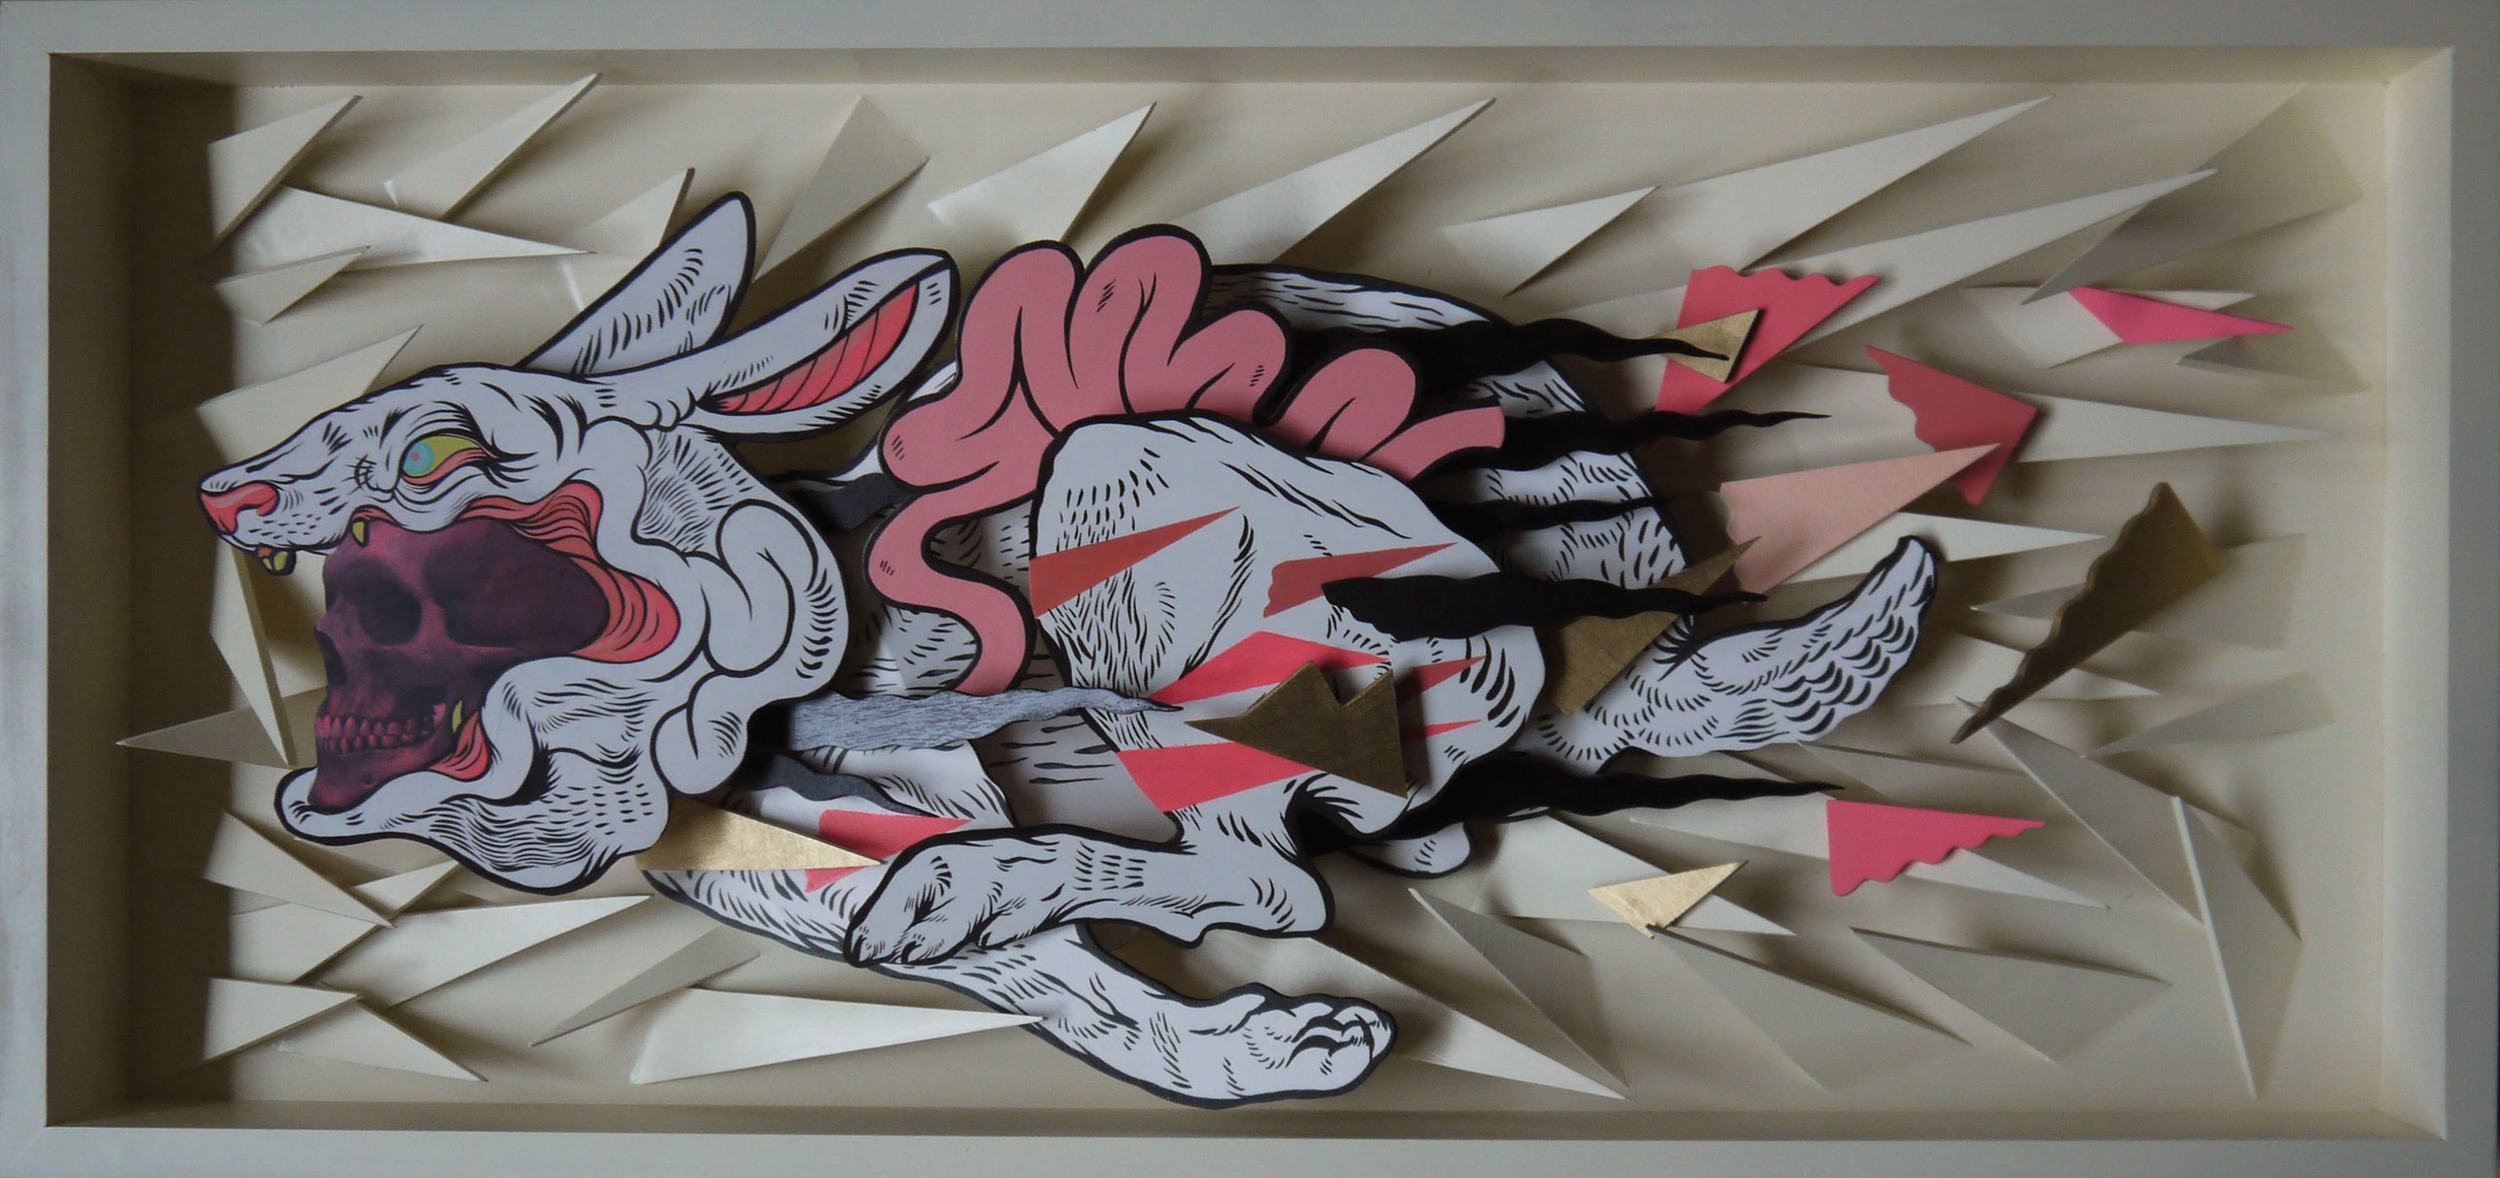 Reaper Rabbit , 2014 [private collection Brooklyn, NY] Wood, Acrylic, Spray Paint, and Ink Transfer 17 x 36 in.